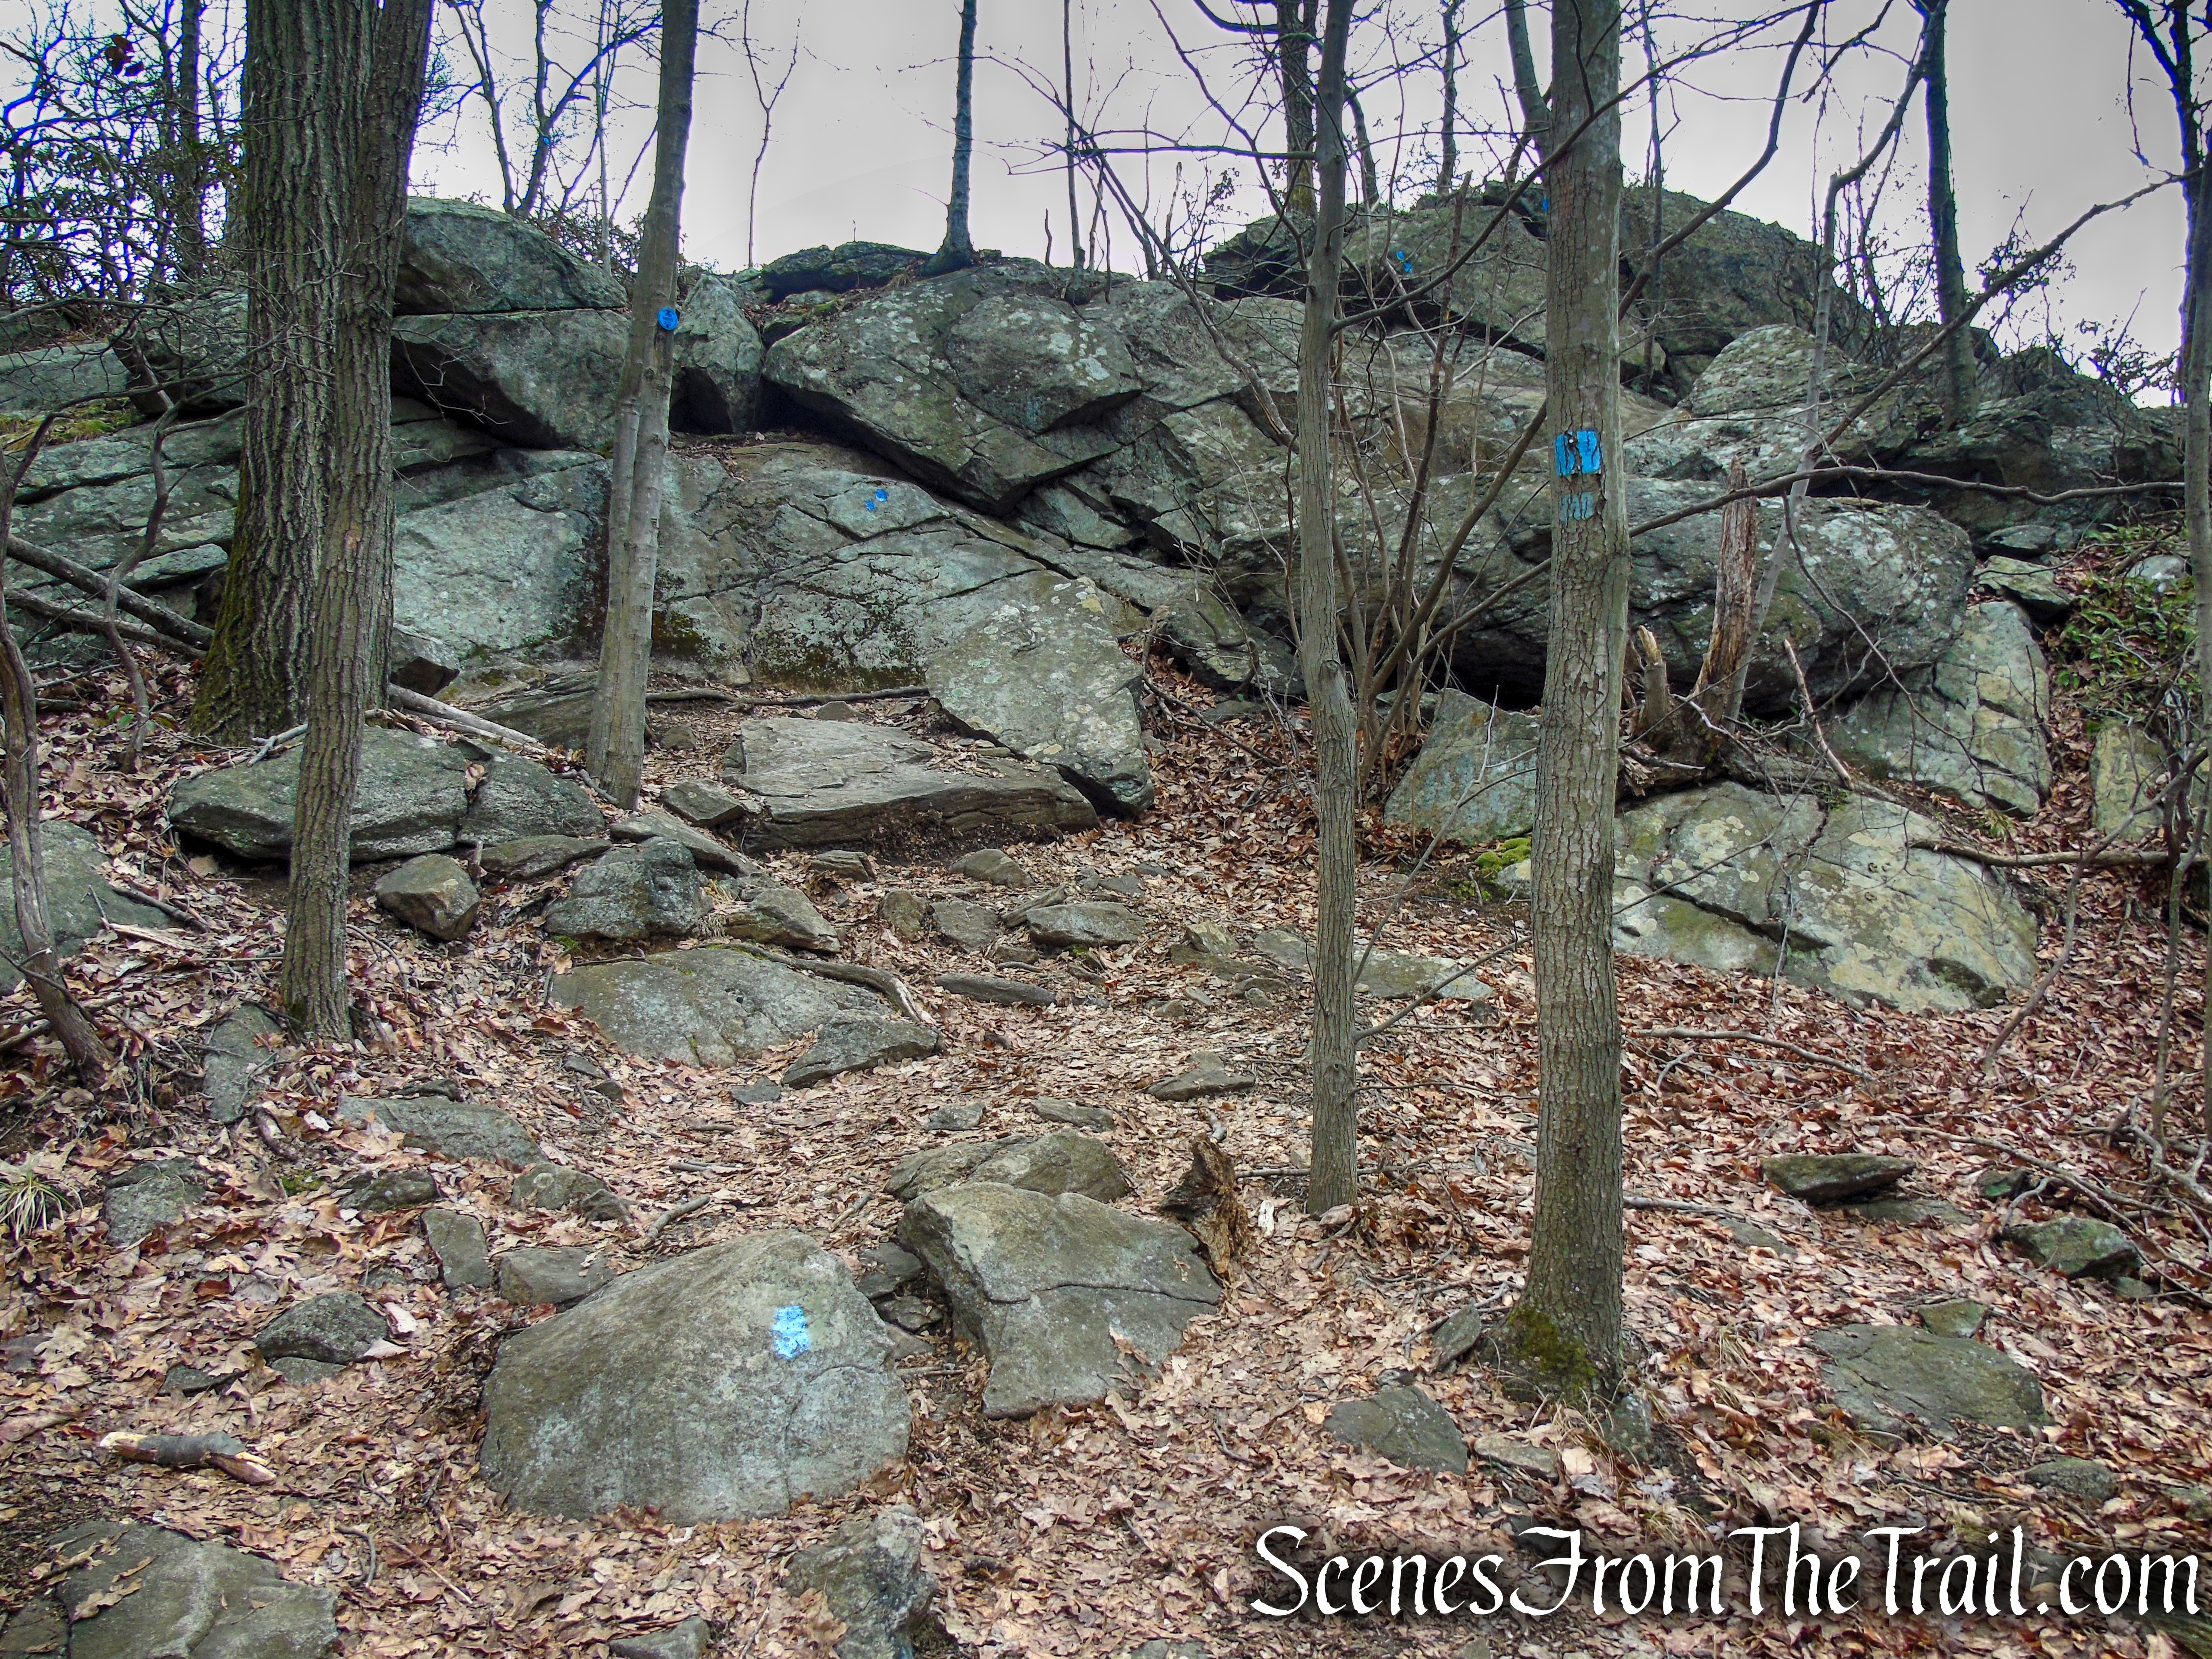 Camp Smith Trail – Anthony's Nose